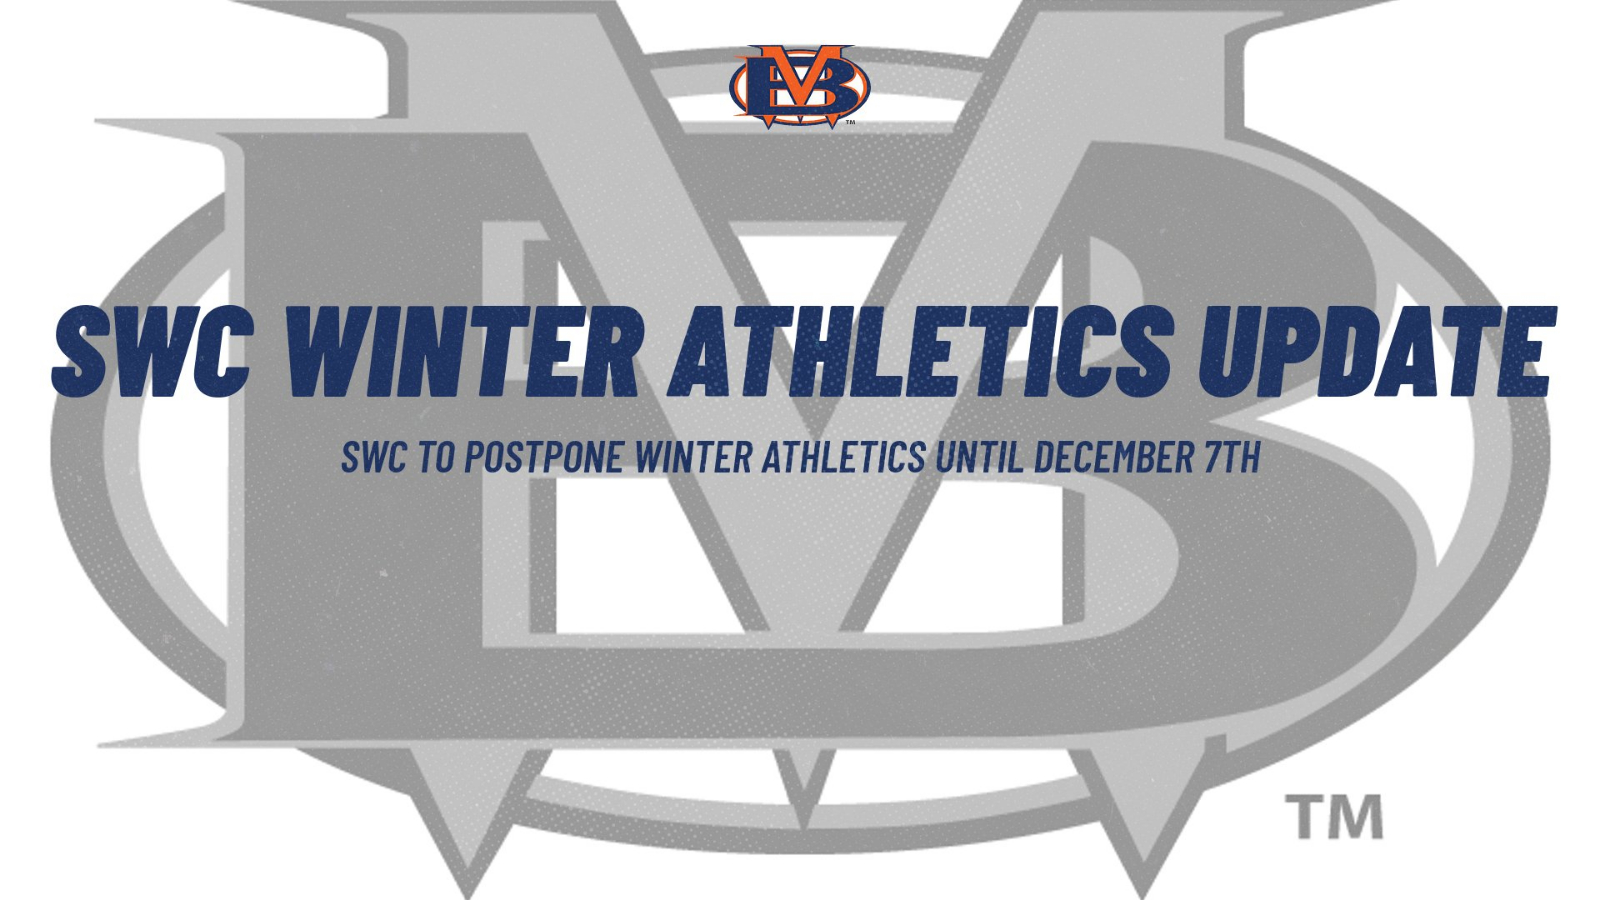 Statement from Southwestern Conference on Winter Sports